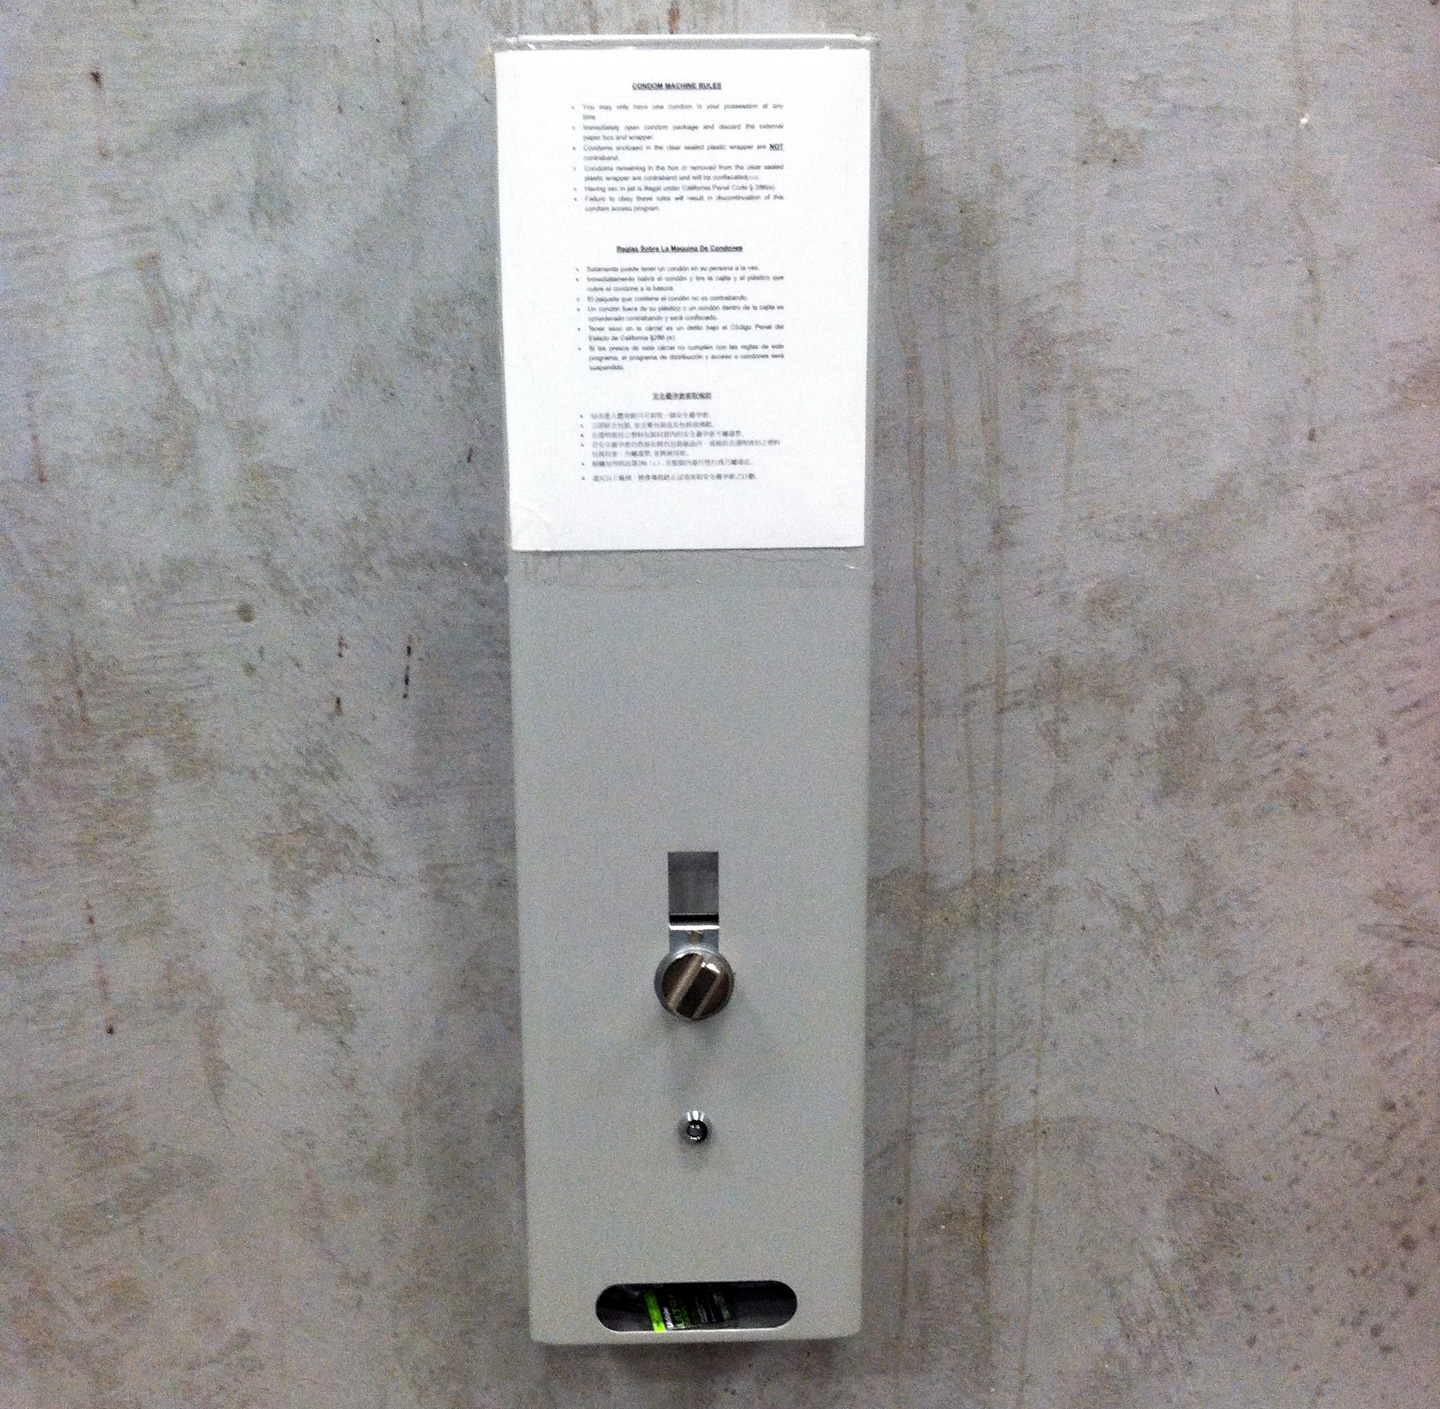 Condoms have been available to prisoners in San Francisco County jails since the 1980s. Under a new law, condom machines like this one may soon be installed in state prisons.